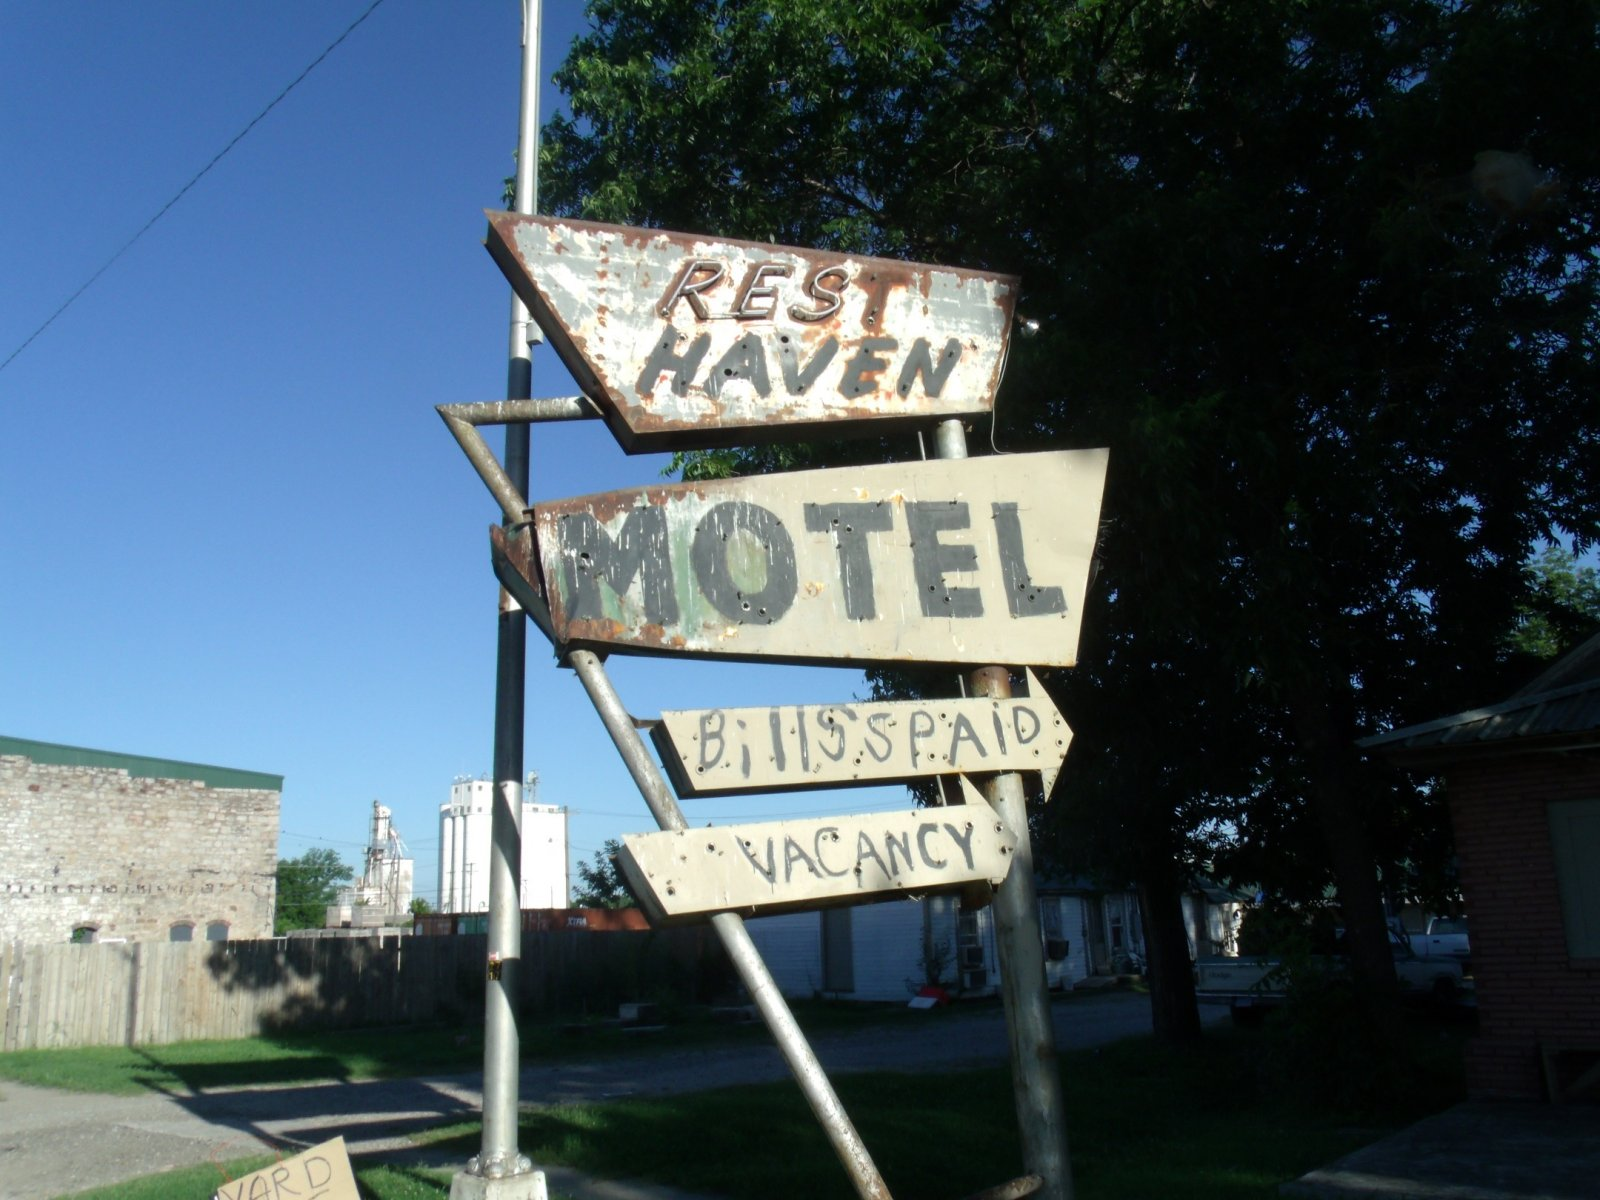 rt 66 day 2 035 rest haven sign.jpg